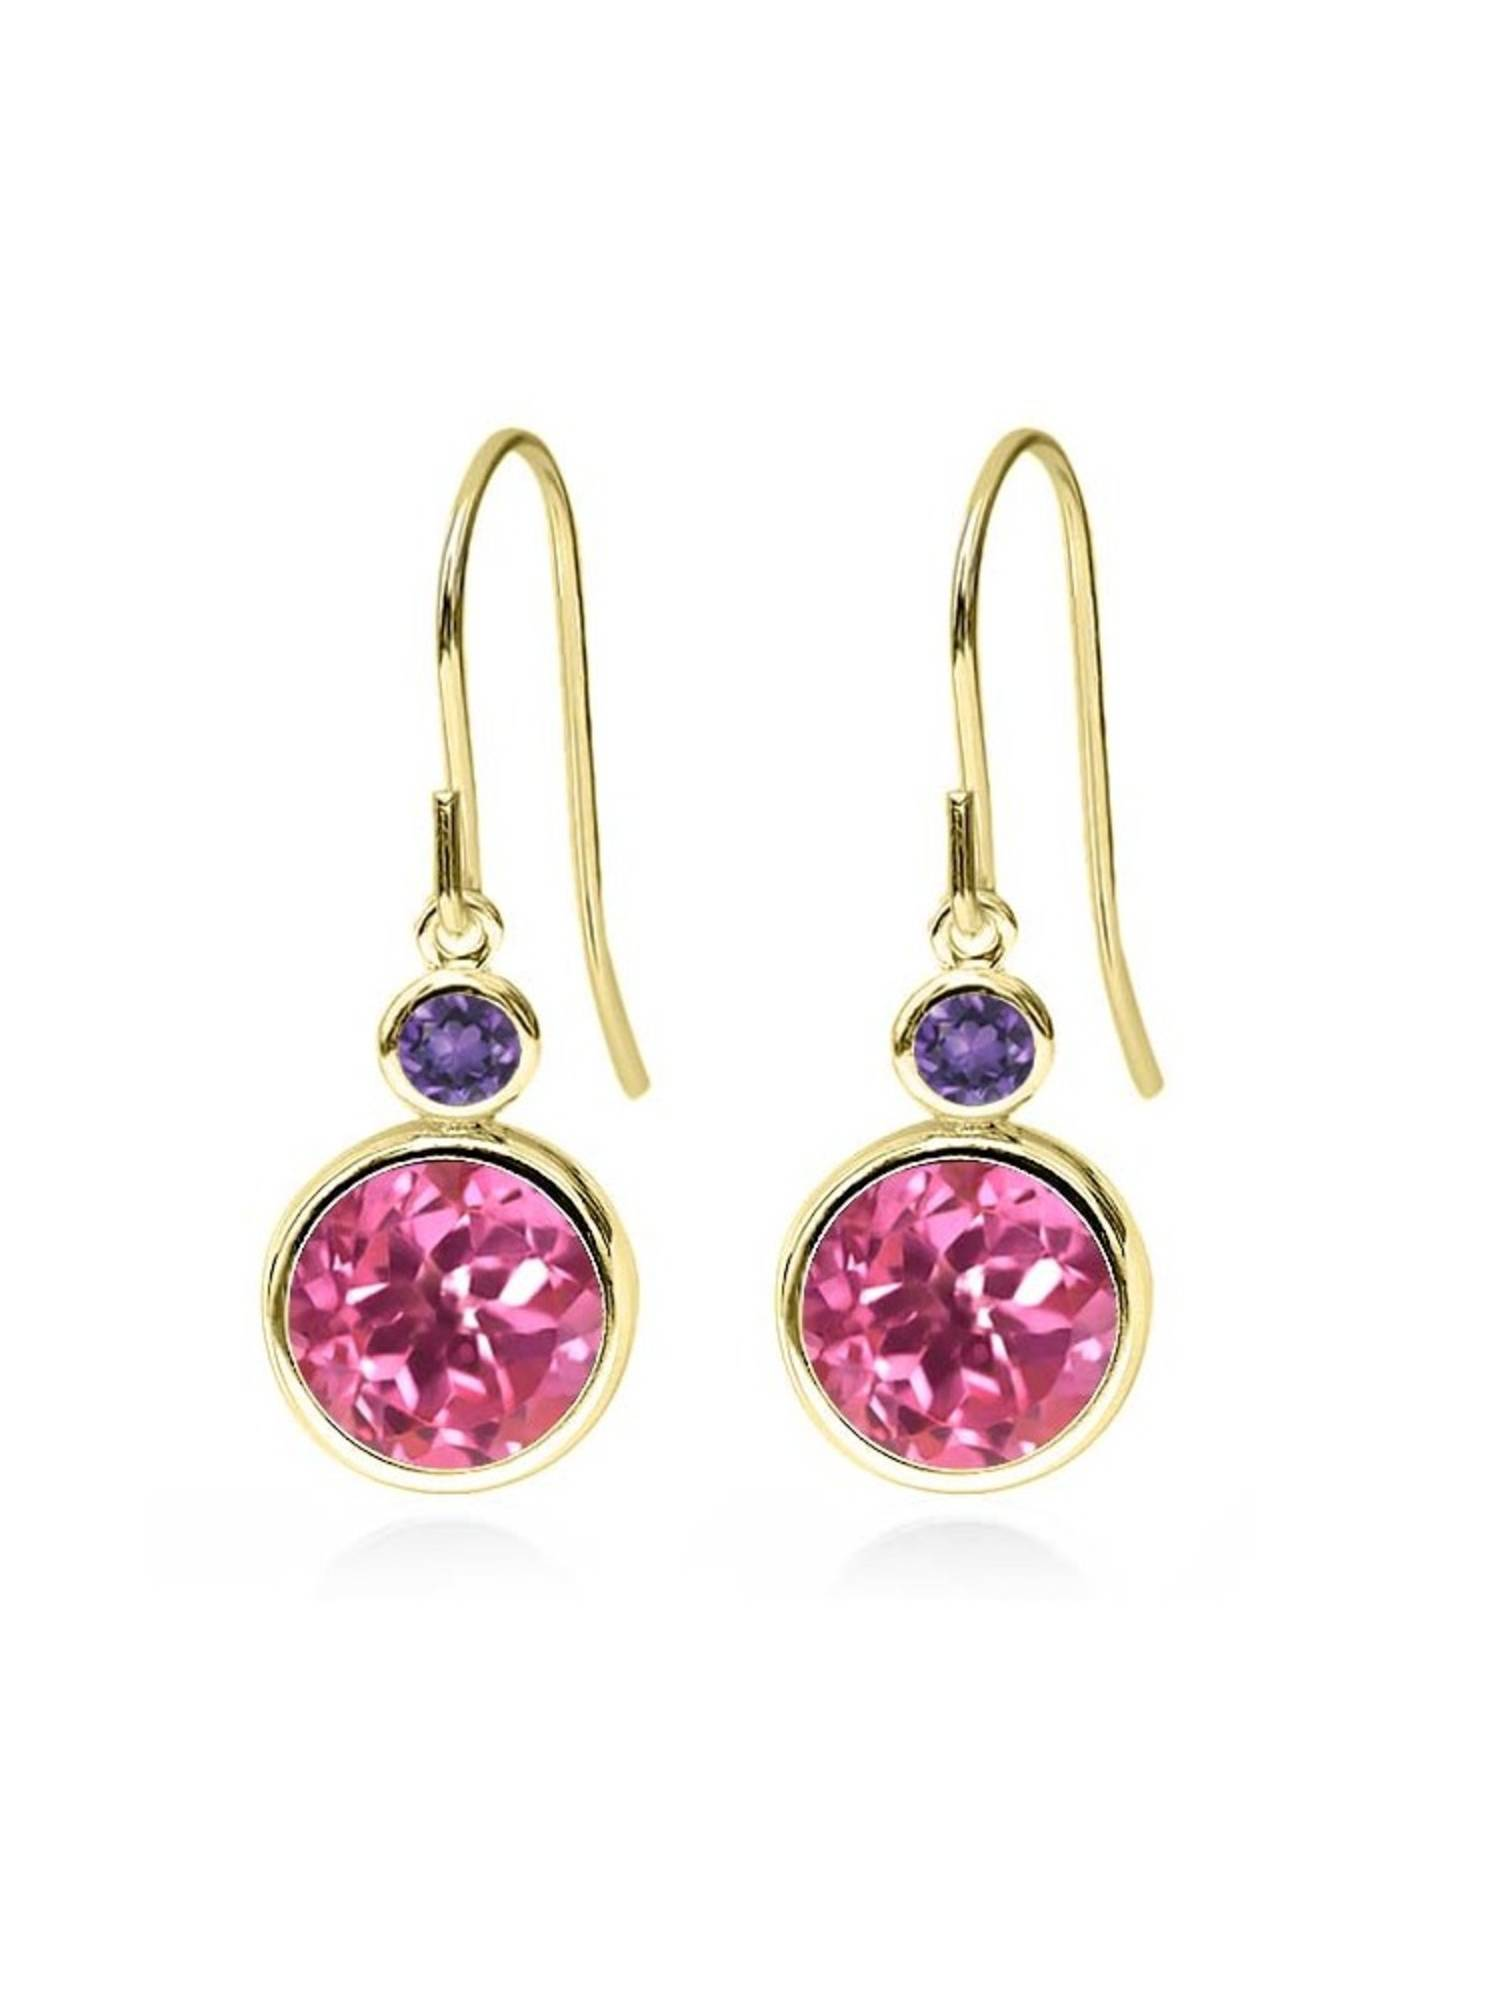 4.90 Ct Round Pink Mystic Topaz Purple Amethyst 14K Yellow Gold Earrings by